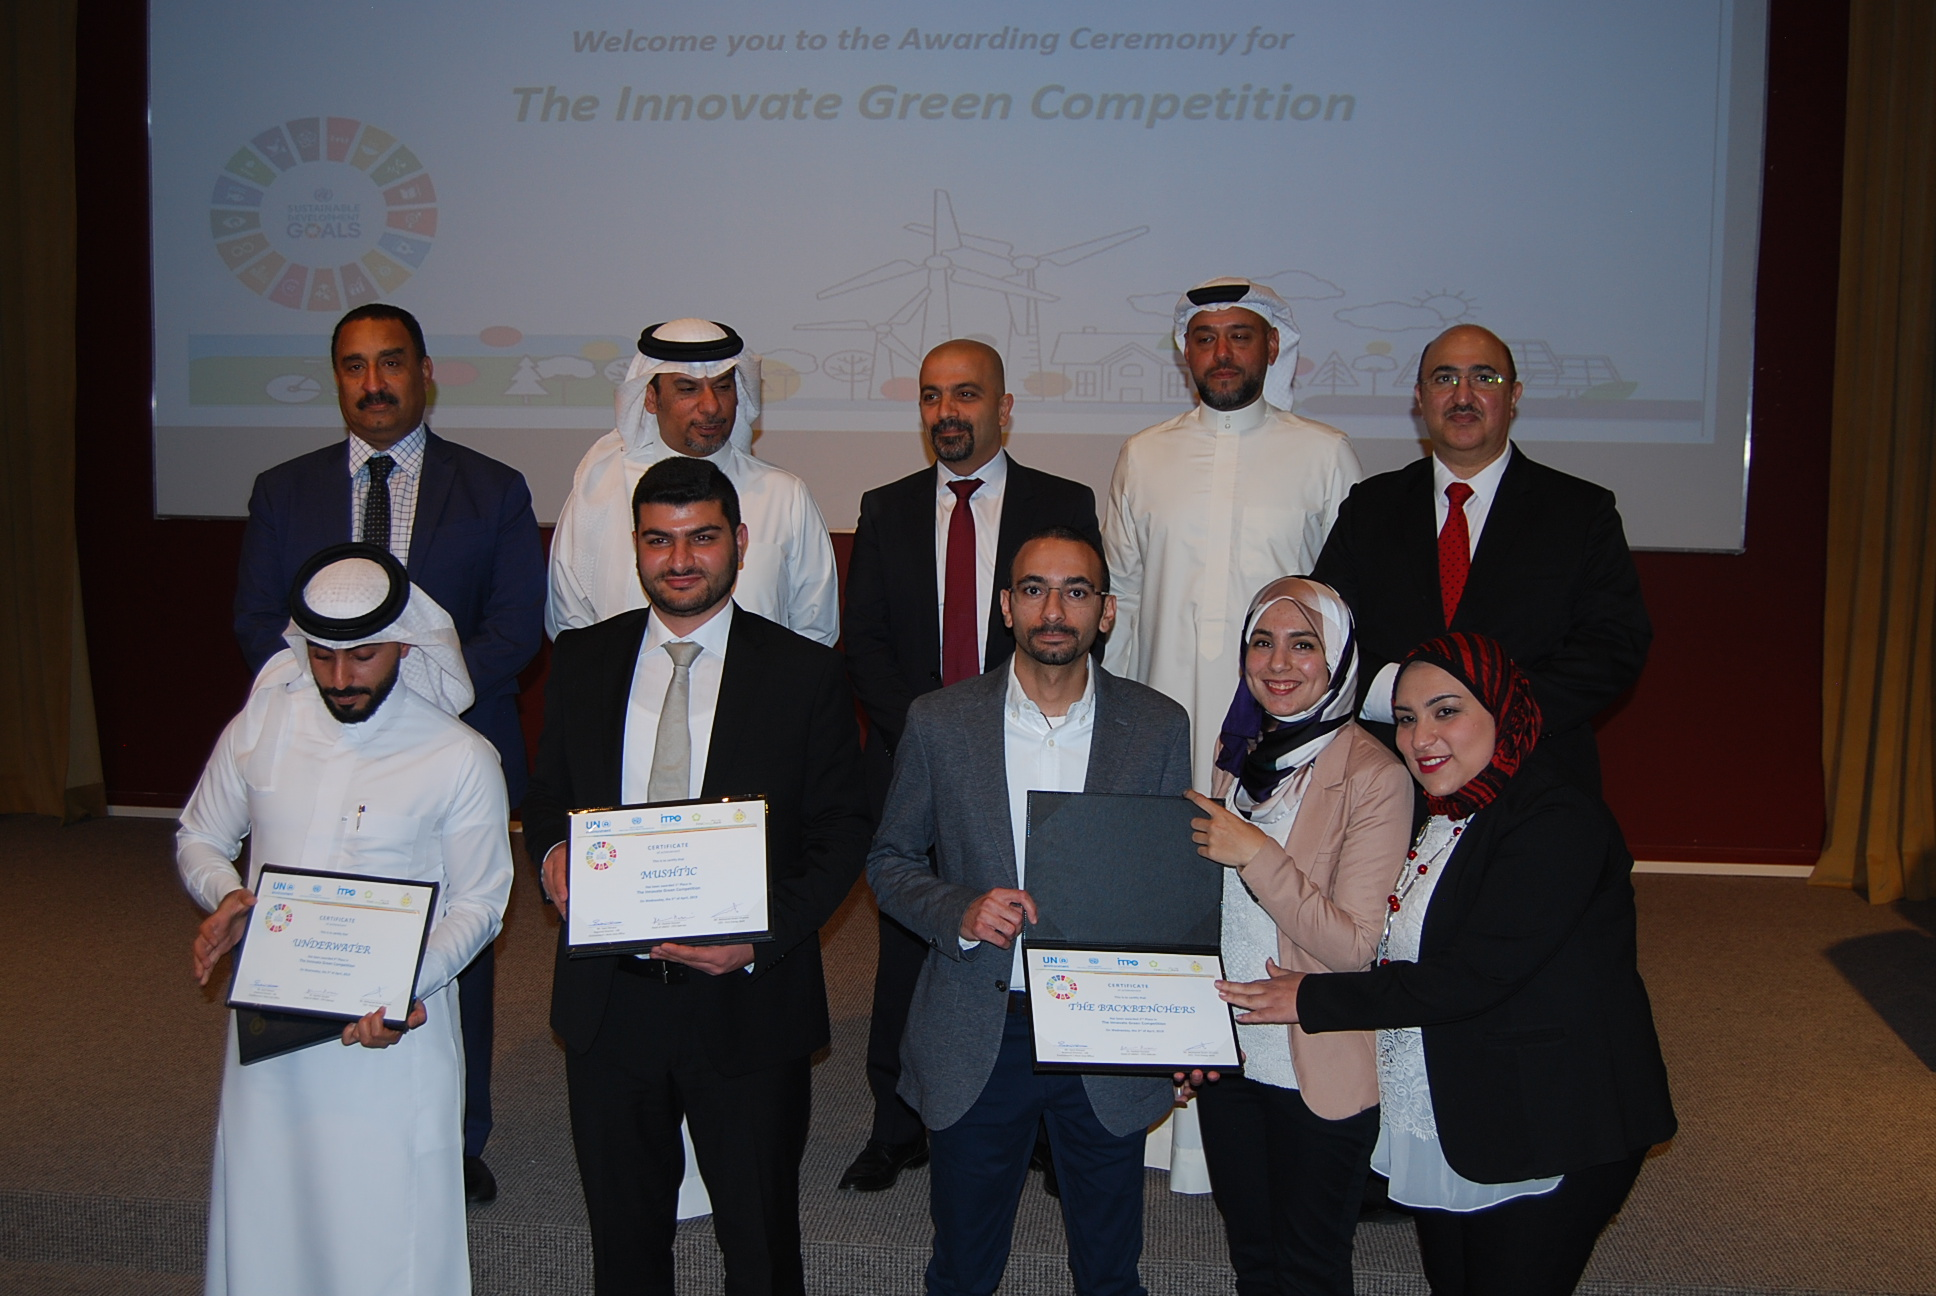 The UN Environment's West Asia Office and UNIDO ITPO Bahrain and AICEI held the Awarding Ceremony for The Innovate Green Competition